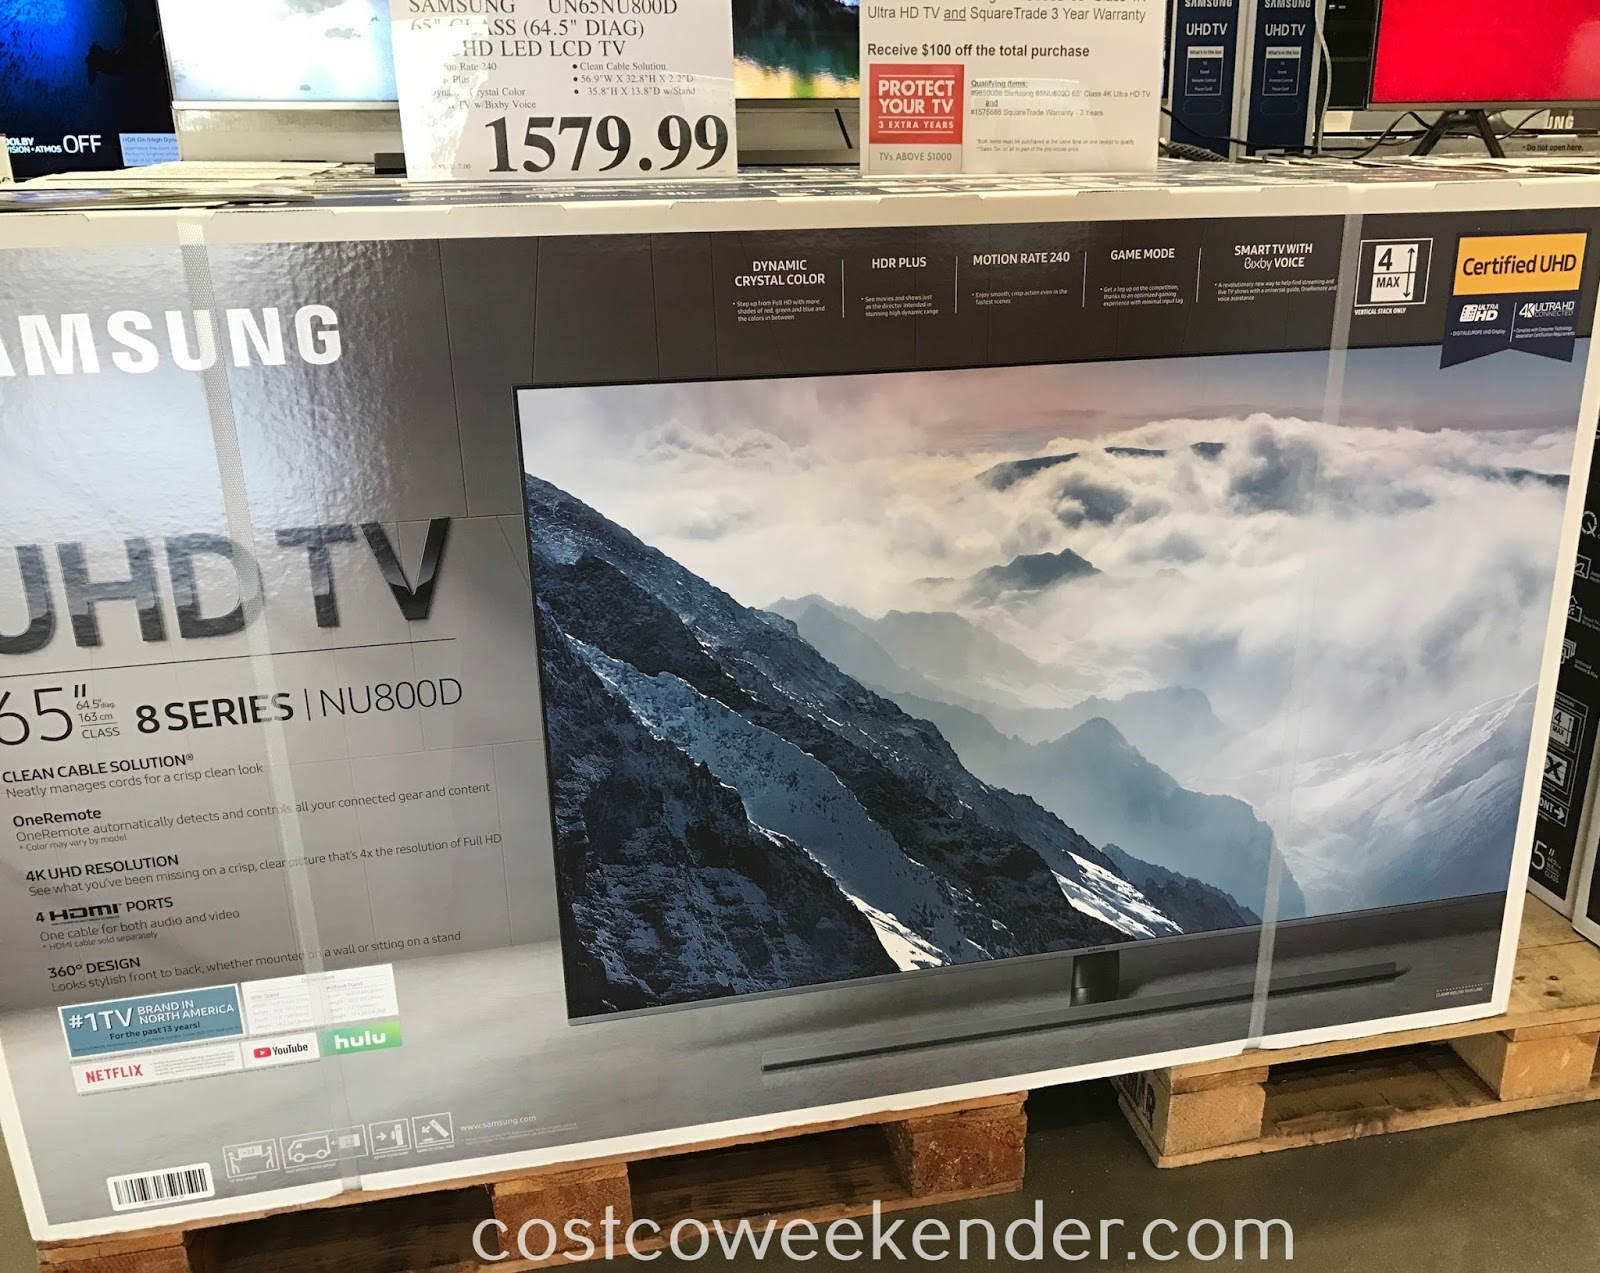 Costco 9650008 - Samsung UN65NU800D 65in 4K UHD LED LCD TV: good quality and stunning picture